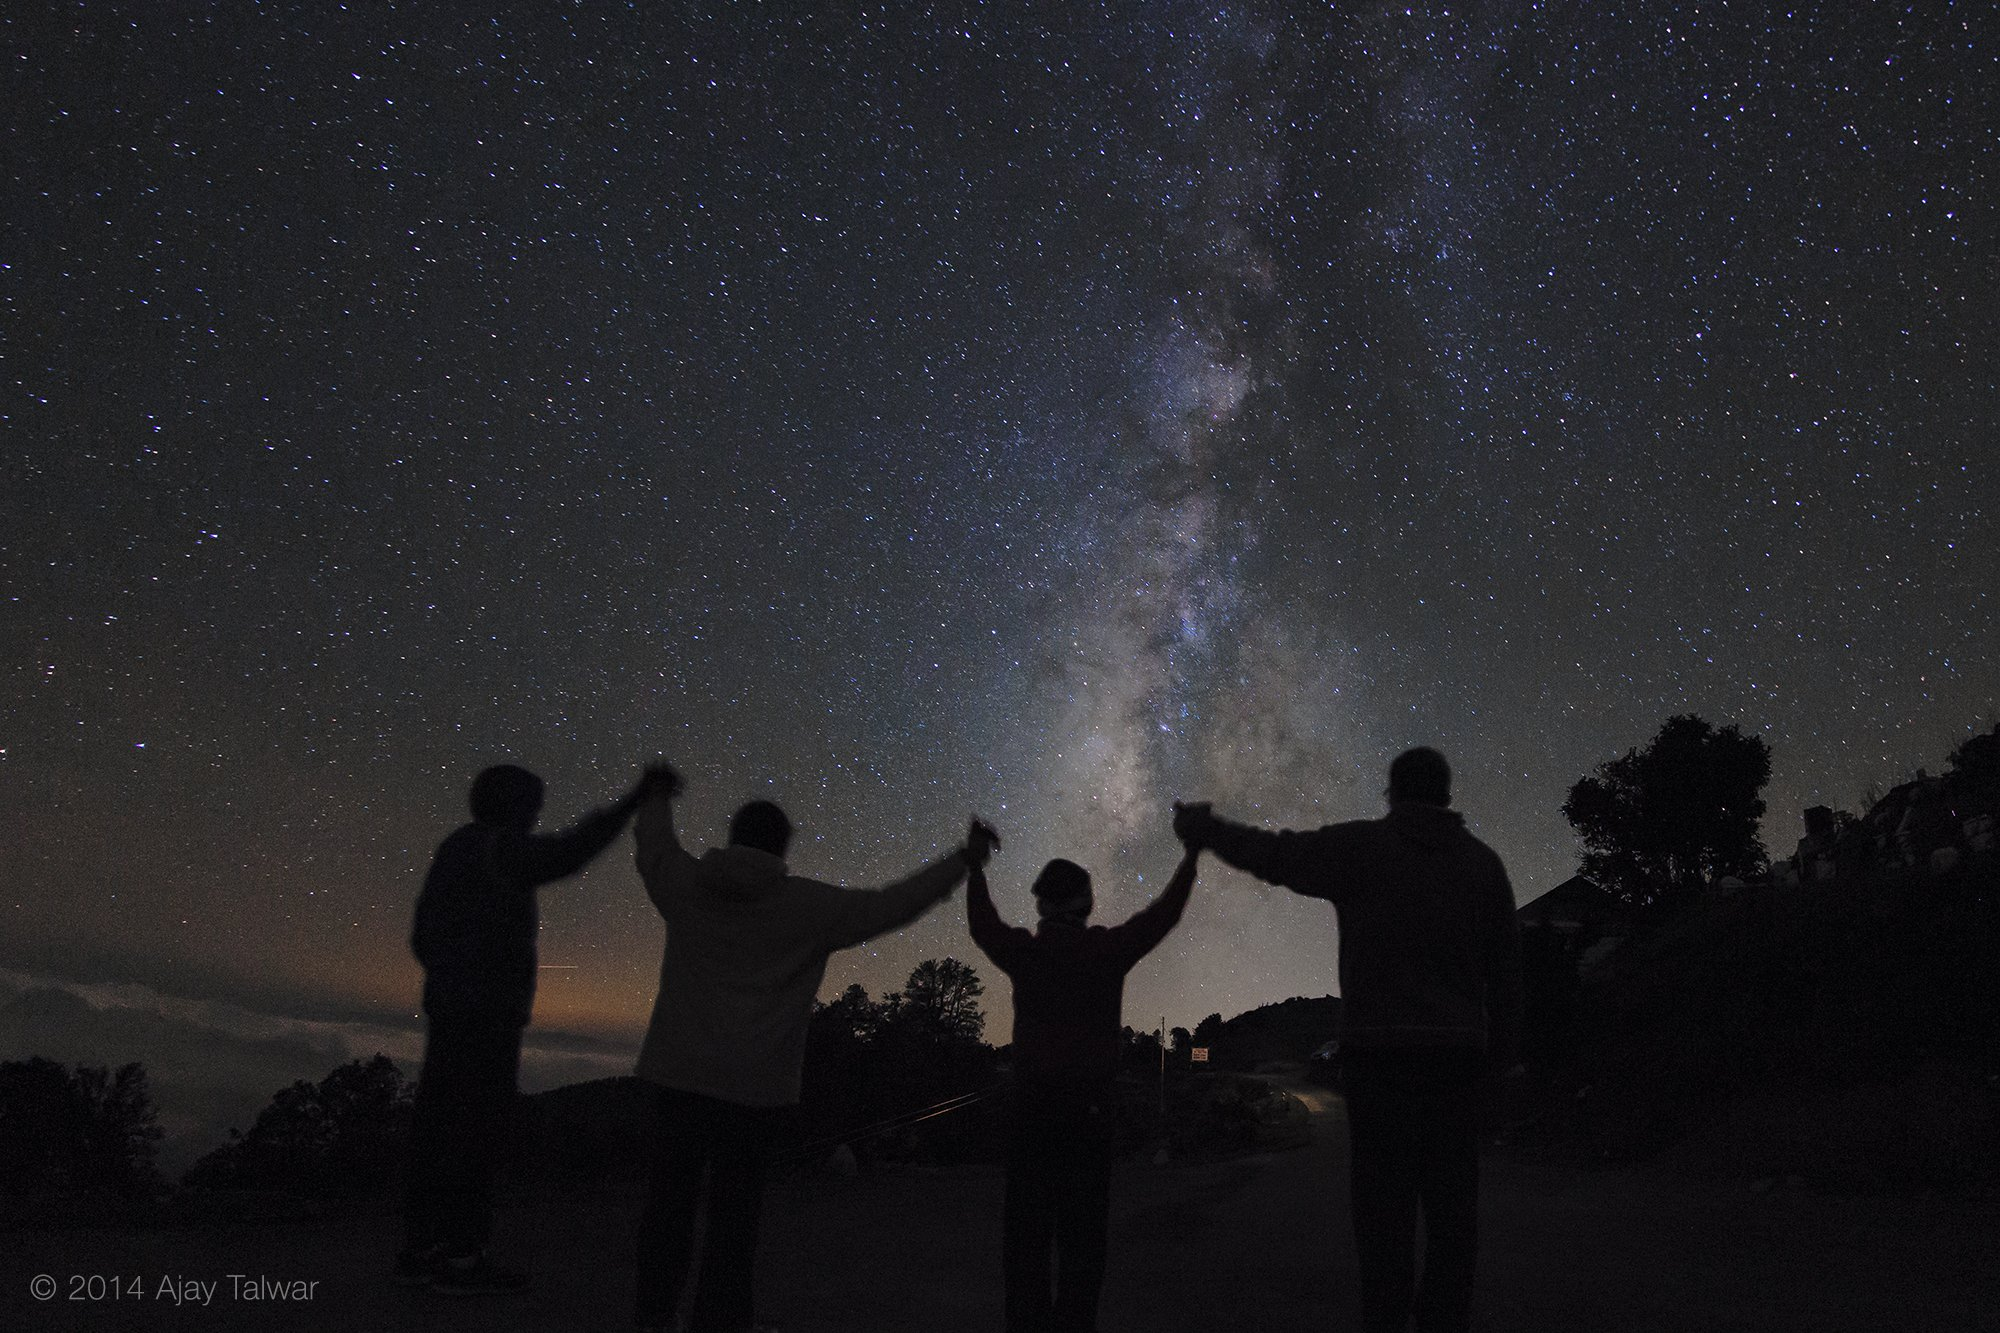 Two Family Camping Nights Under The Milky Way Those Marvelous September At Hatu Remained Clear For Us